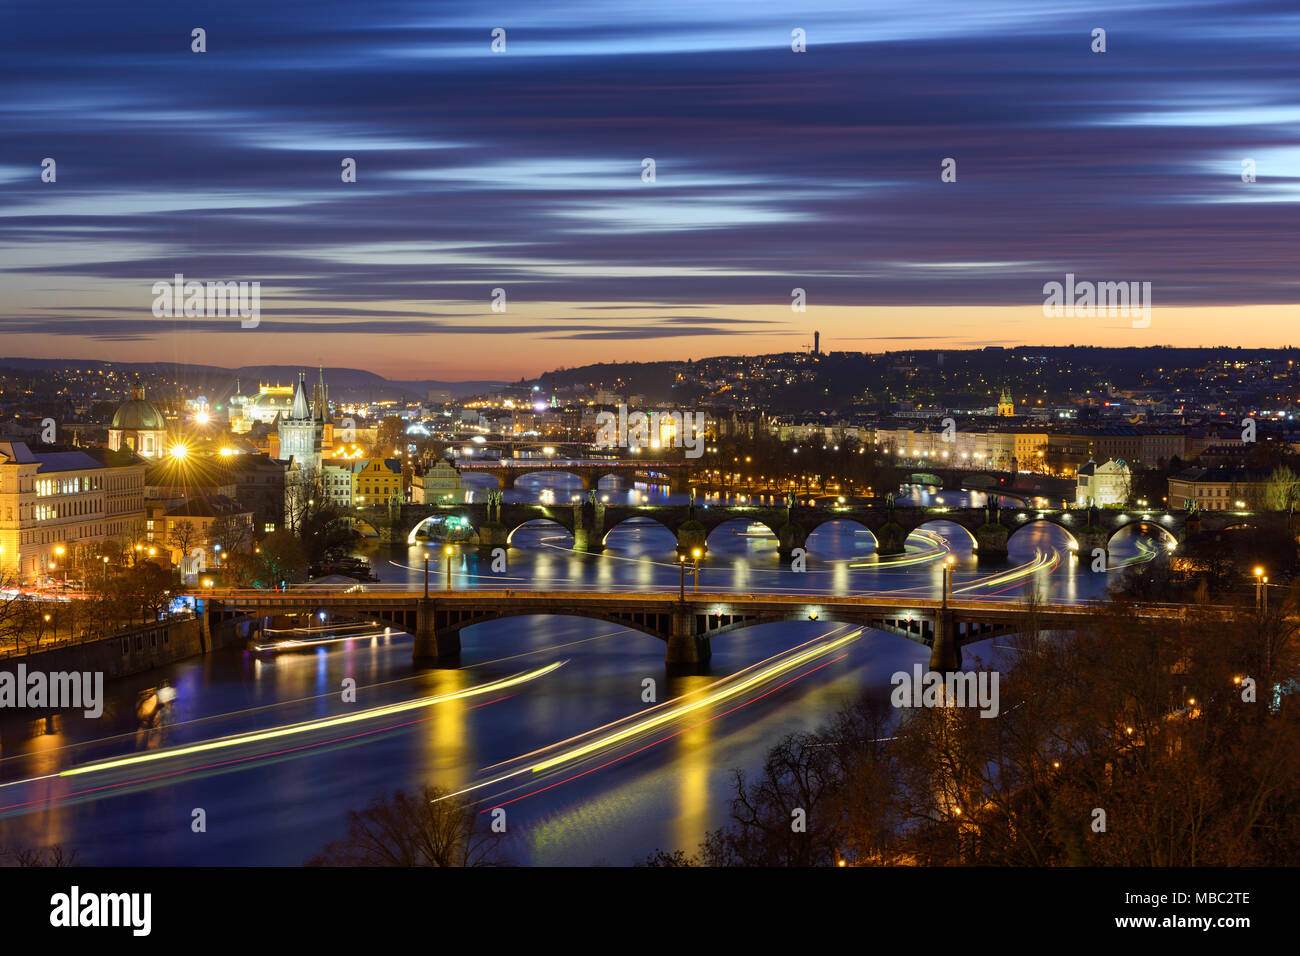 River traffic near majestic Charles Bridge during sunset with several boats, Prague, Czech republic - Stock Image